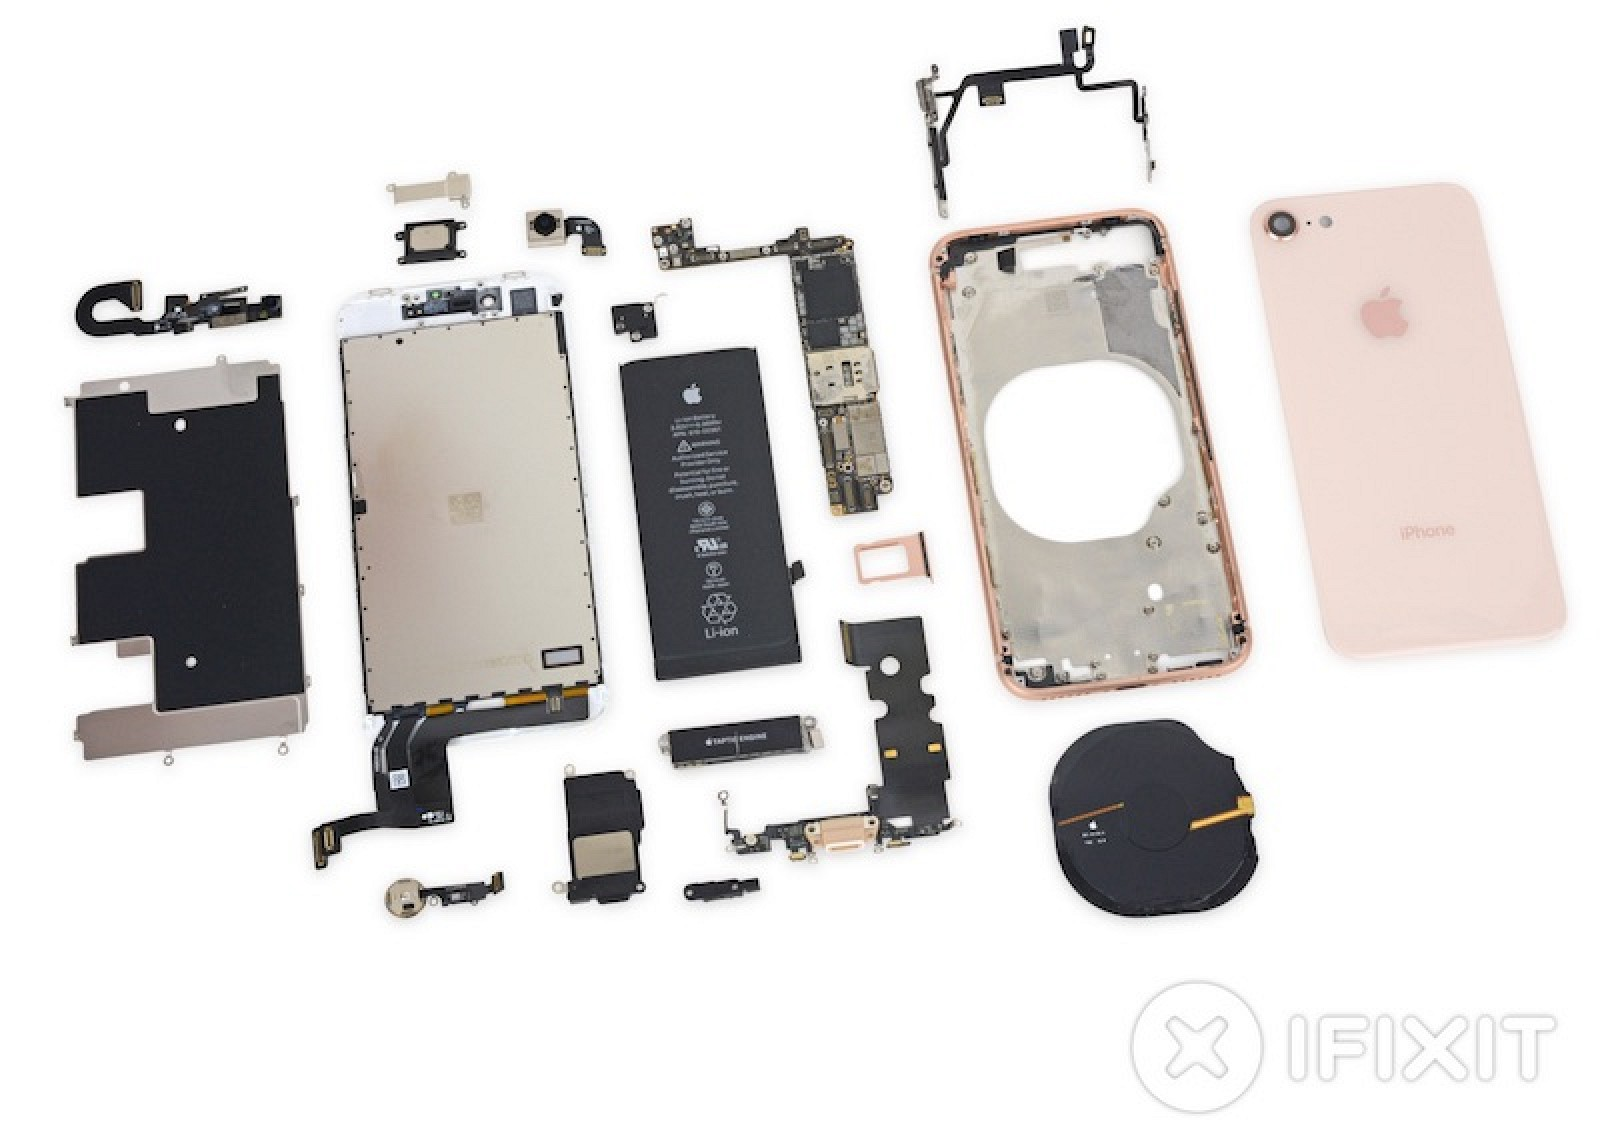 iFixit teardown